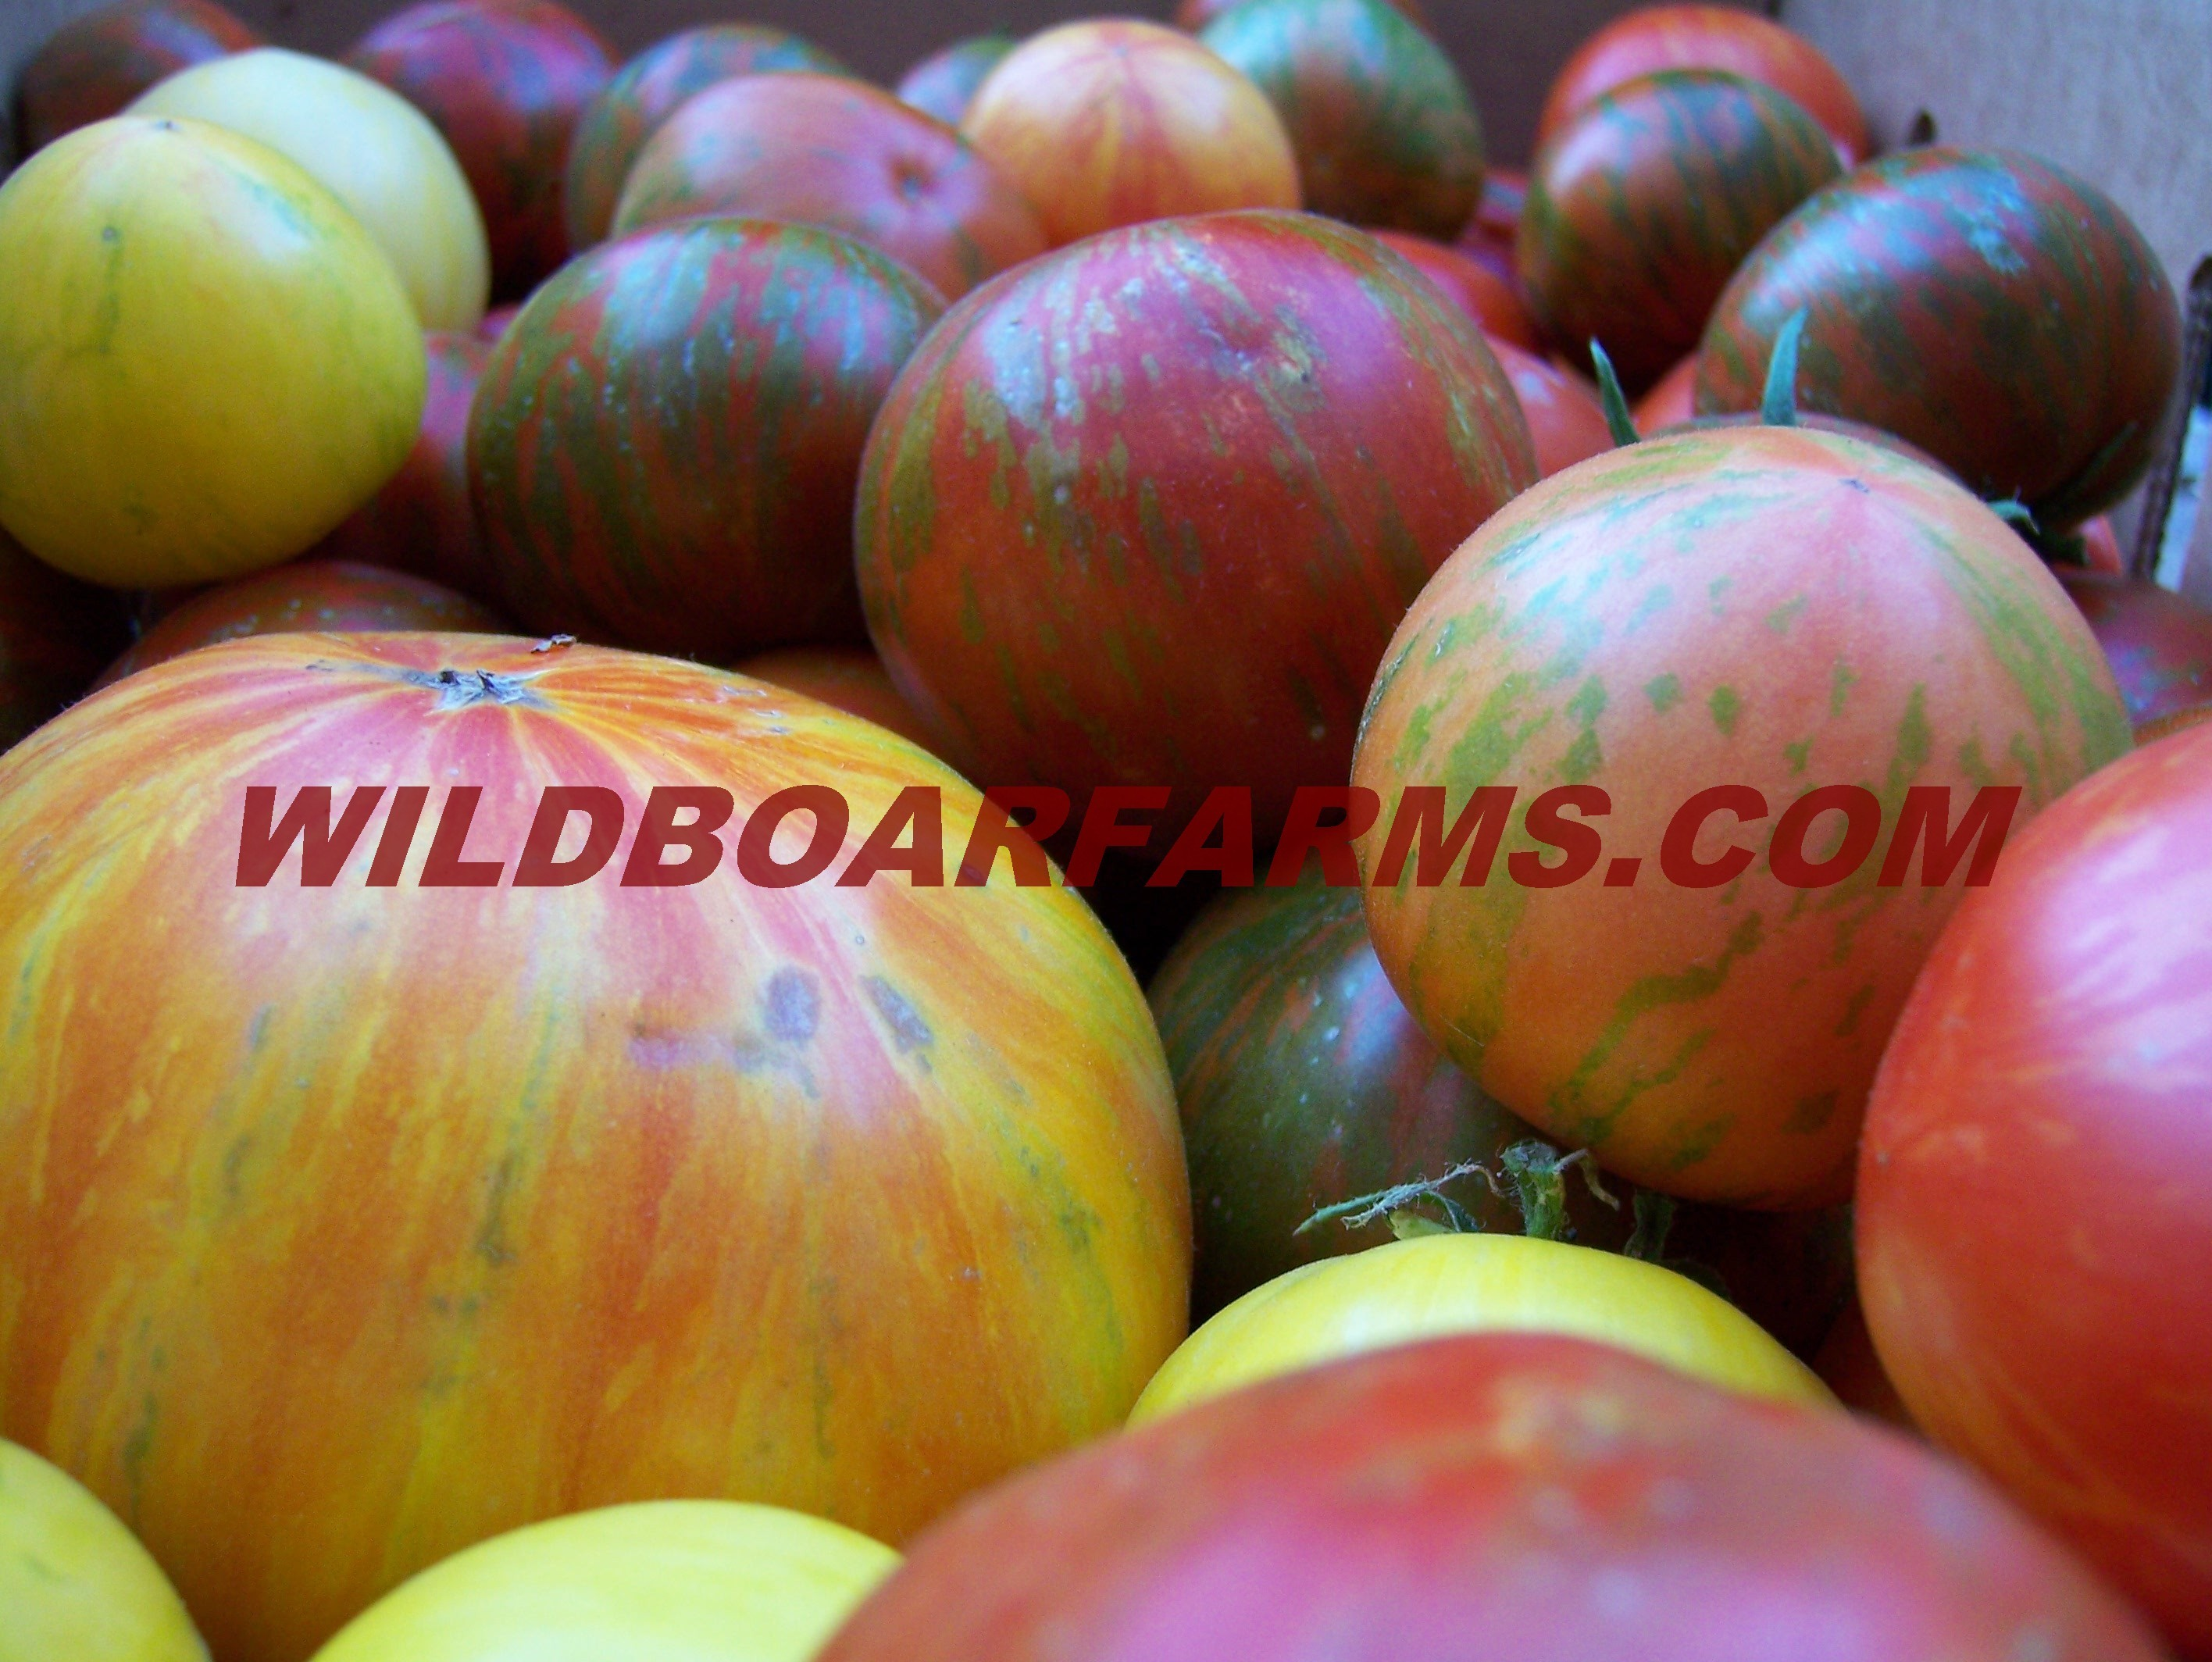 Wild Boar Farms Tomatoes 17